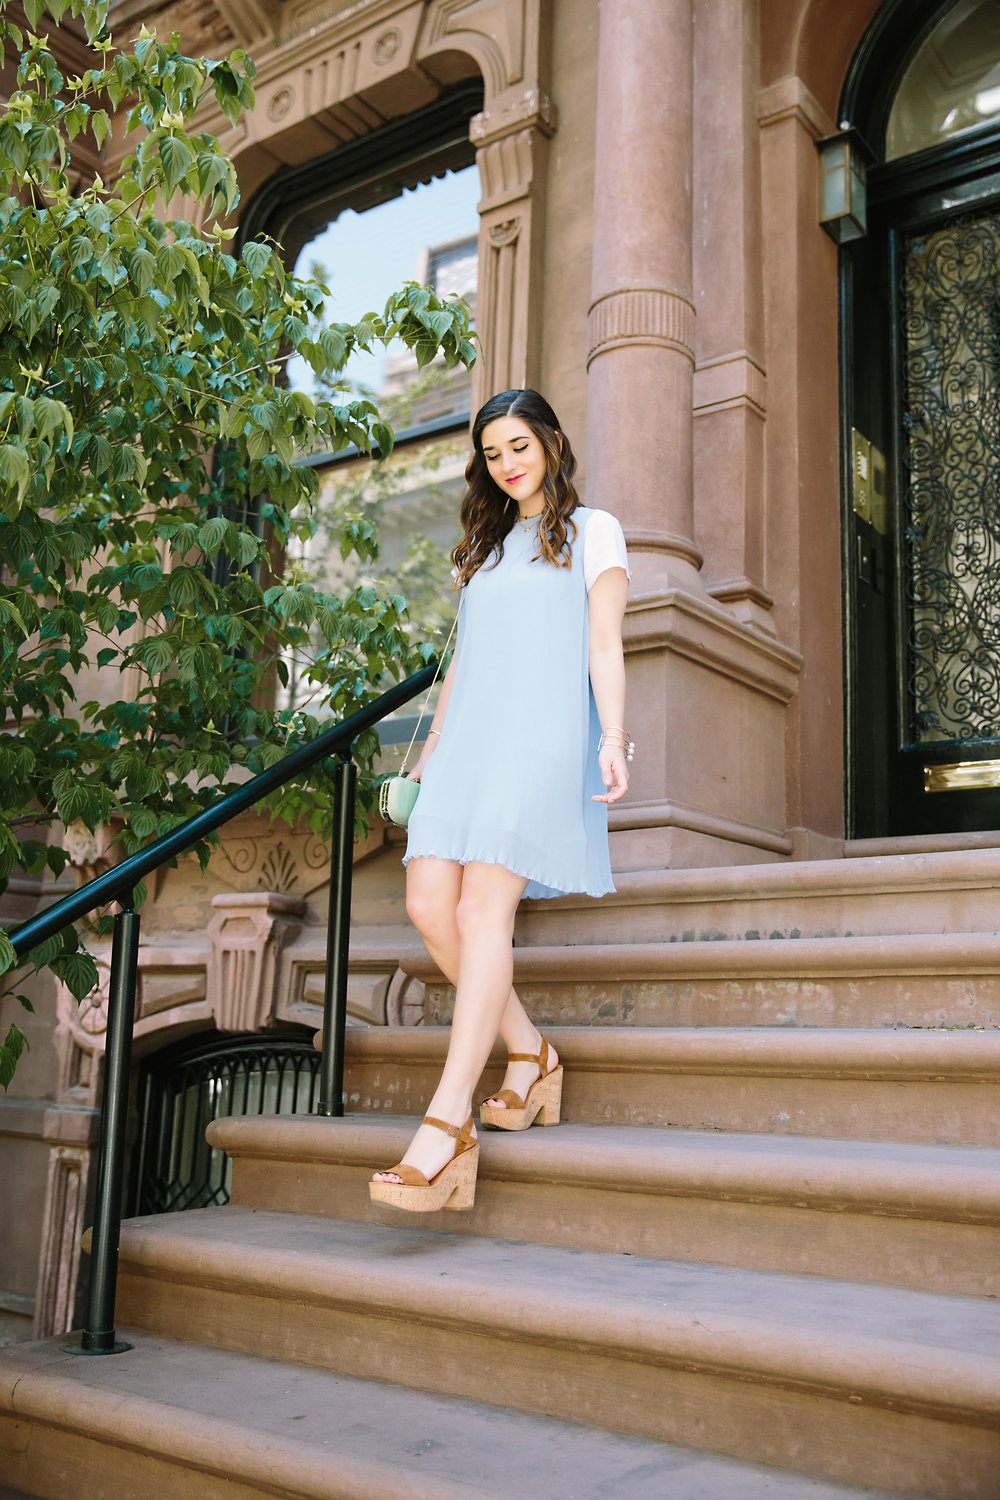 Pastel Blue Pleated Dress Keepsake The Label Louboutins & Love Fashion Blog Esther Santer NYC Street Style Blogger Outfit OOTD Pretty Photoshoot Upper East Side Dolce Vita Wedges Gold Jewelry Club Monaco Clutch White Tee Shirt Inspo Women Summer Look.jpg